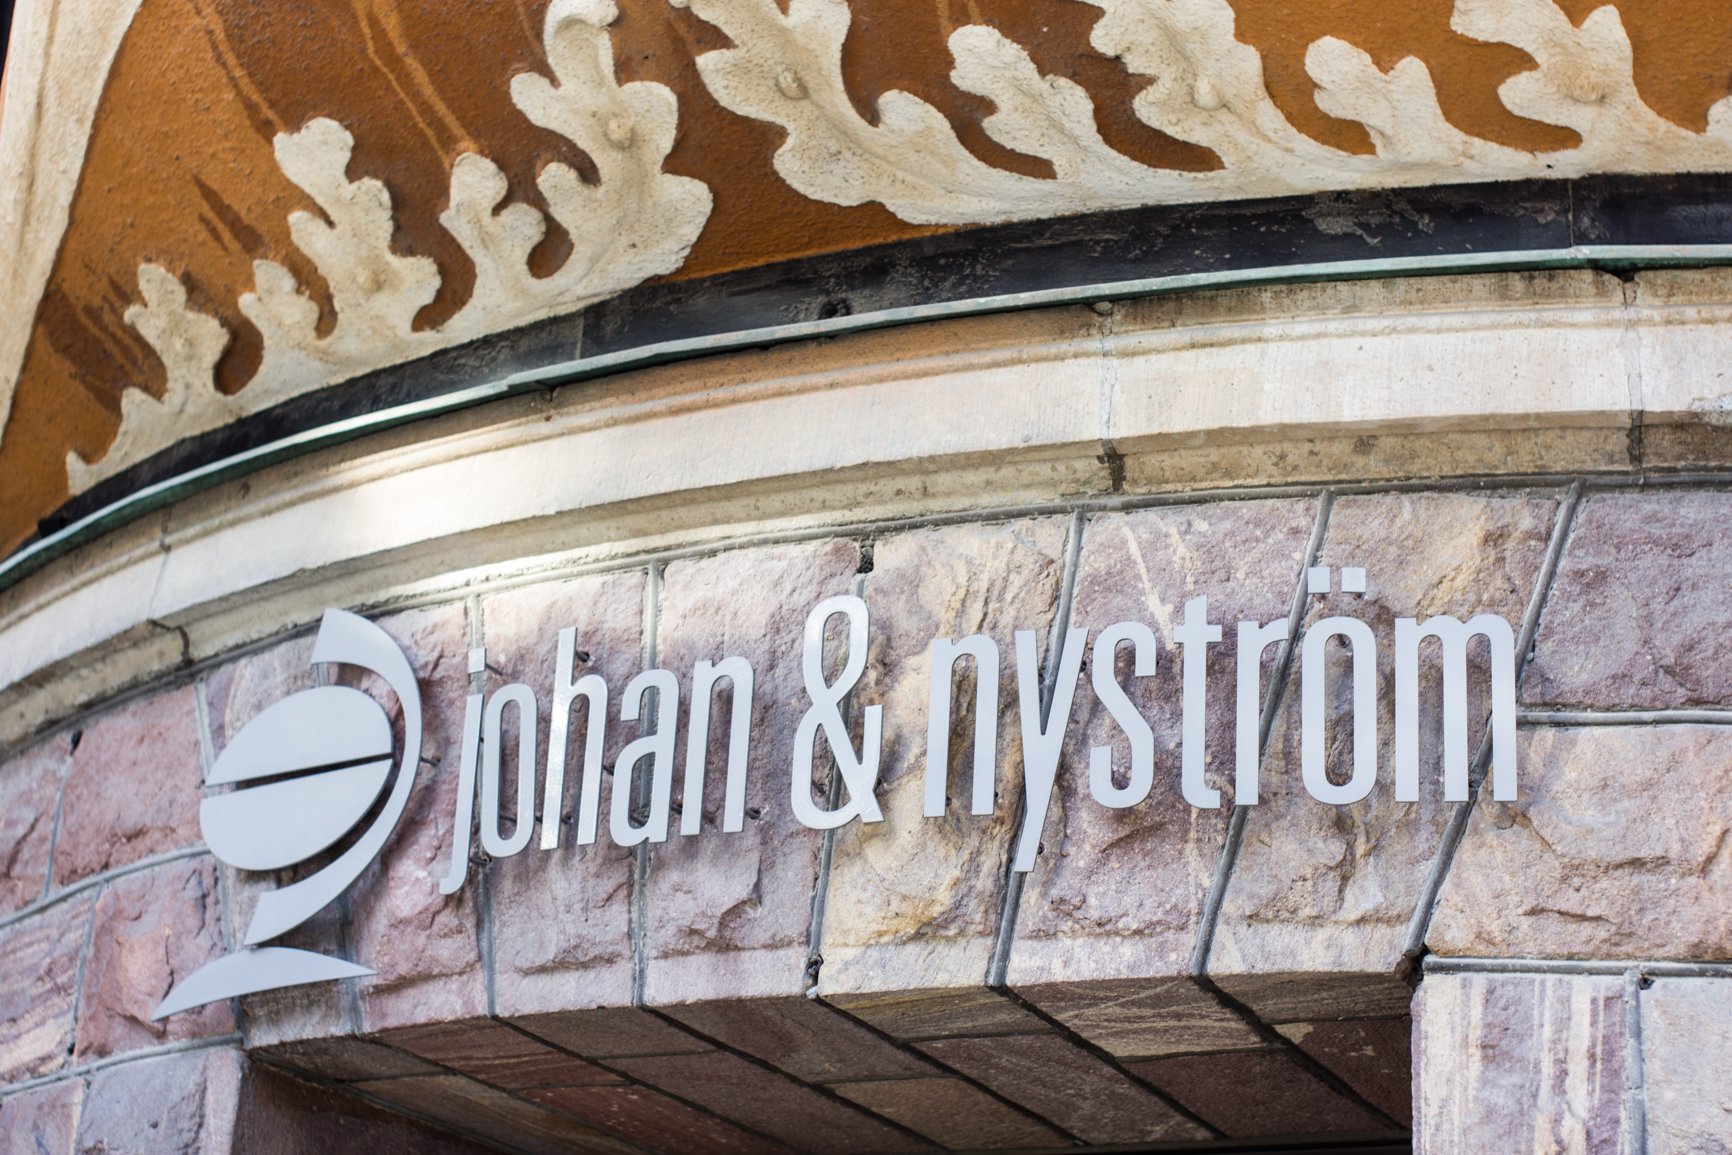 johan and nystrom cafe